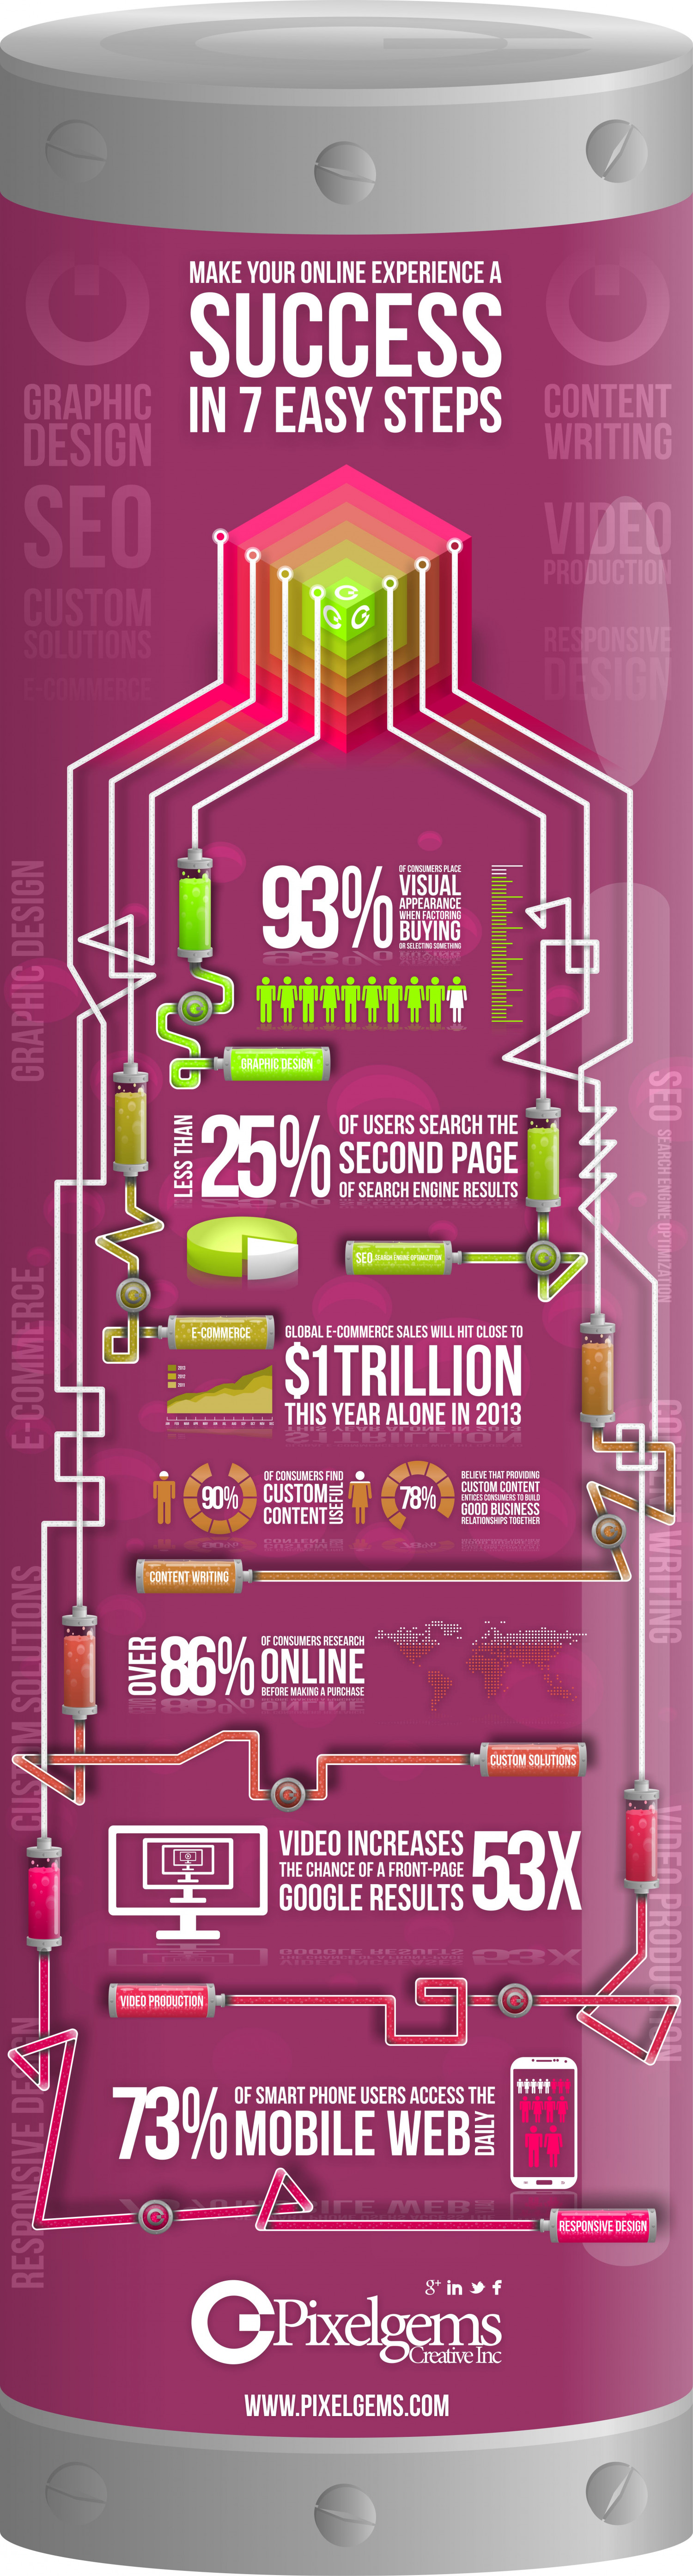 Make Your Online Experience A SUCCESS In 7 Easy Steps Infographic